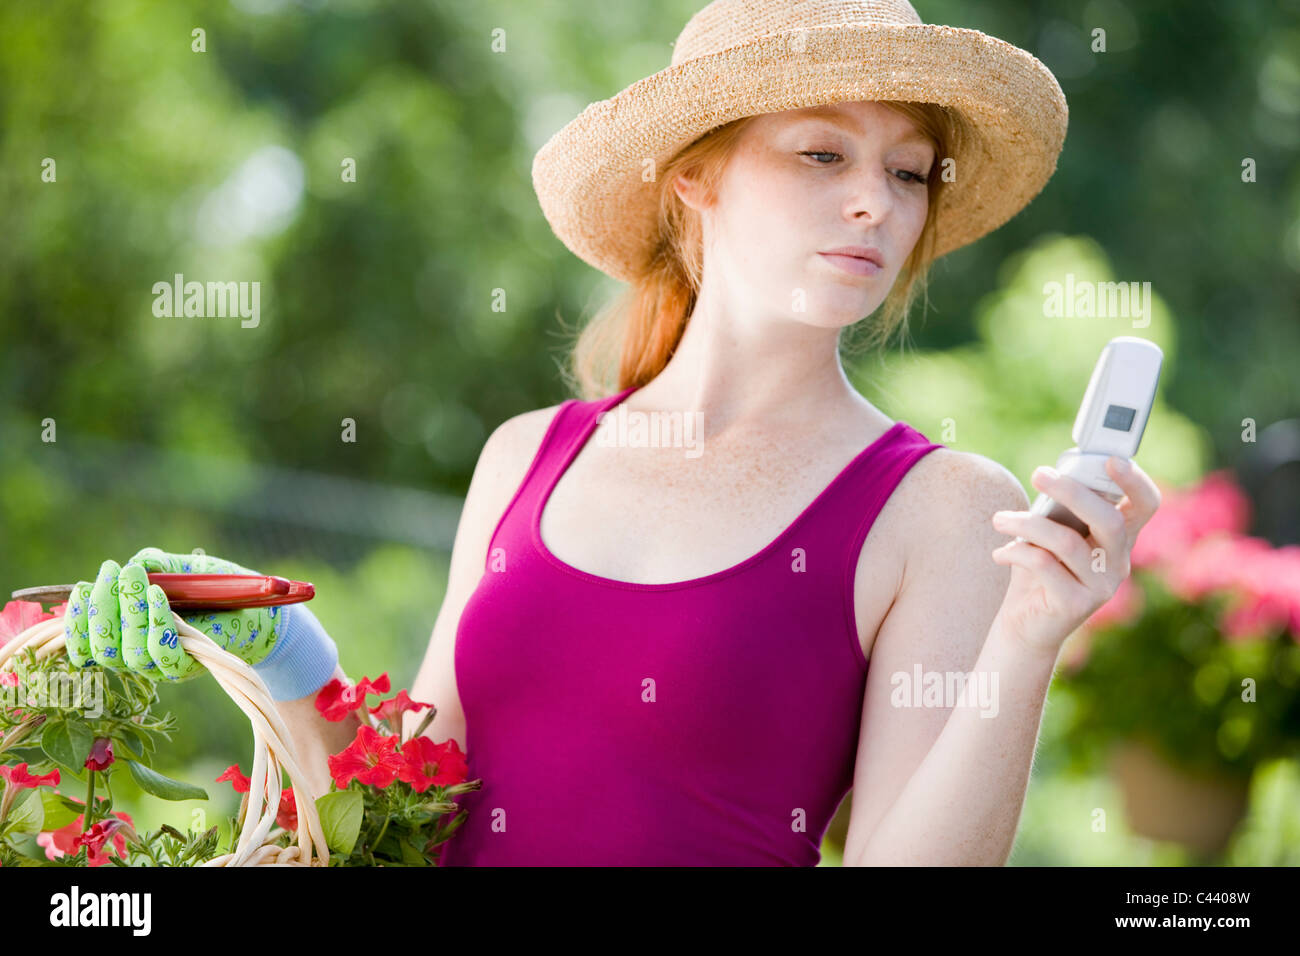 Pretty young woman gardener looking at her cell phone - Stock Image